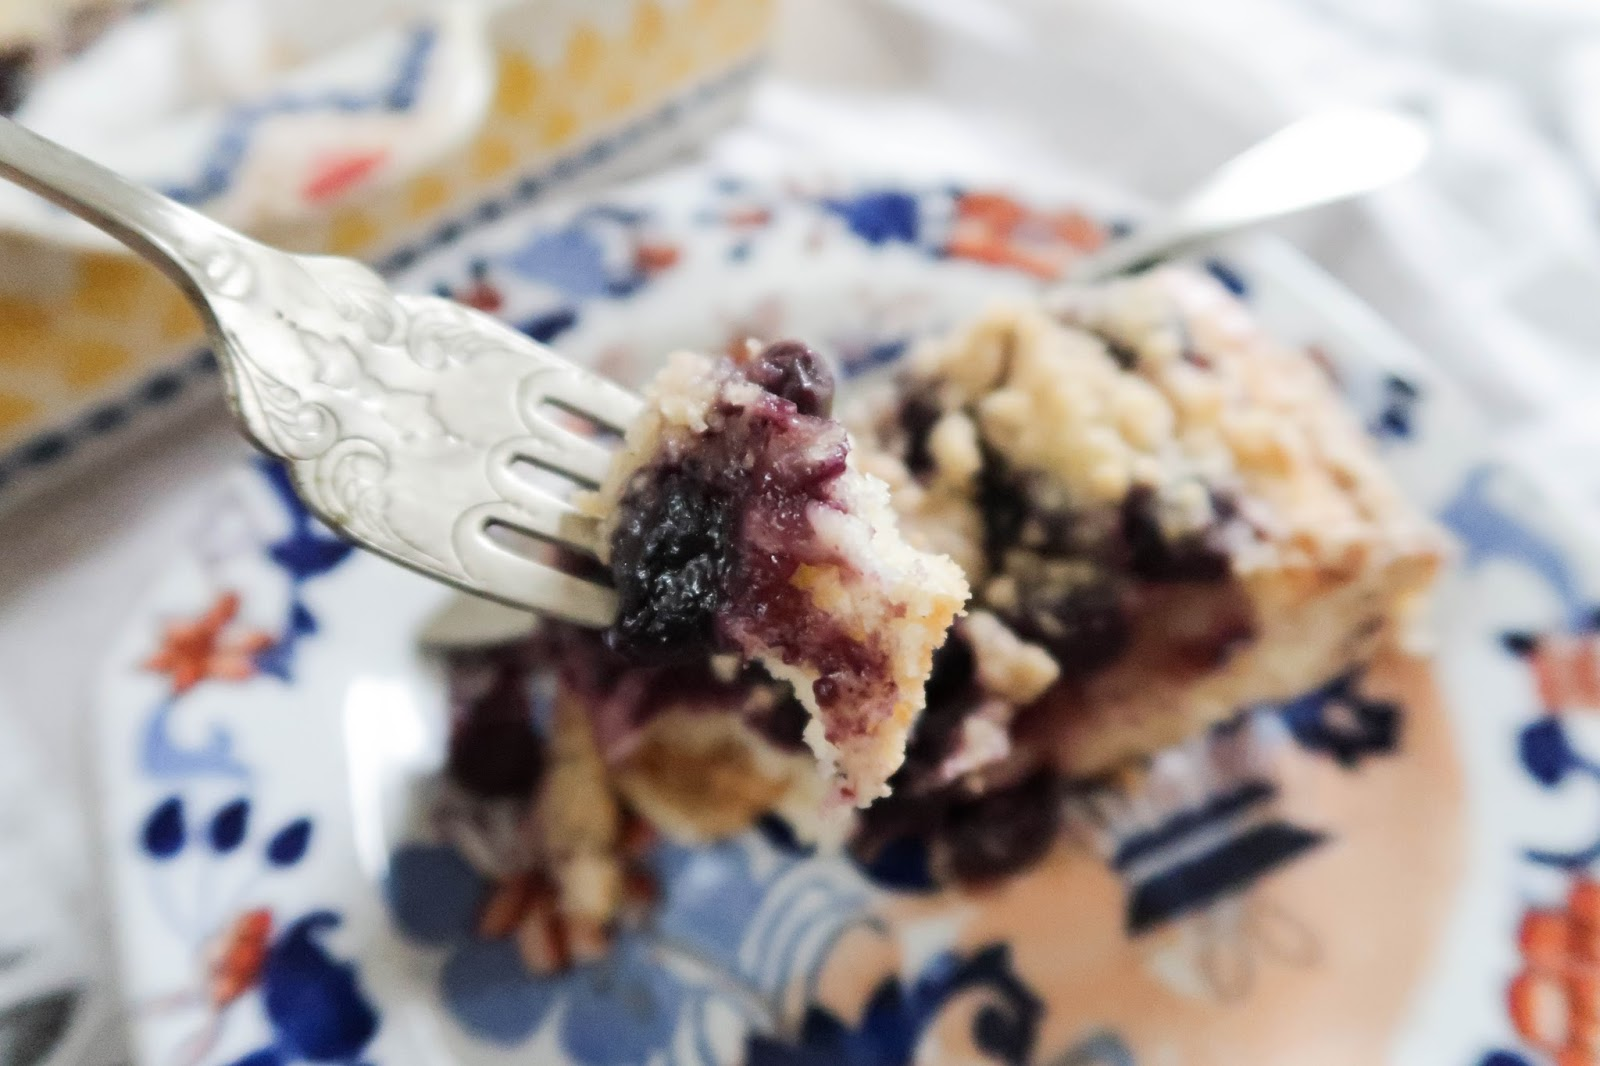 Crumbly & sweet blueberry cake recipe